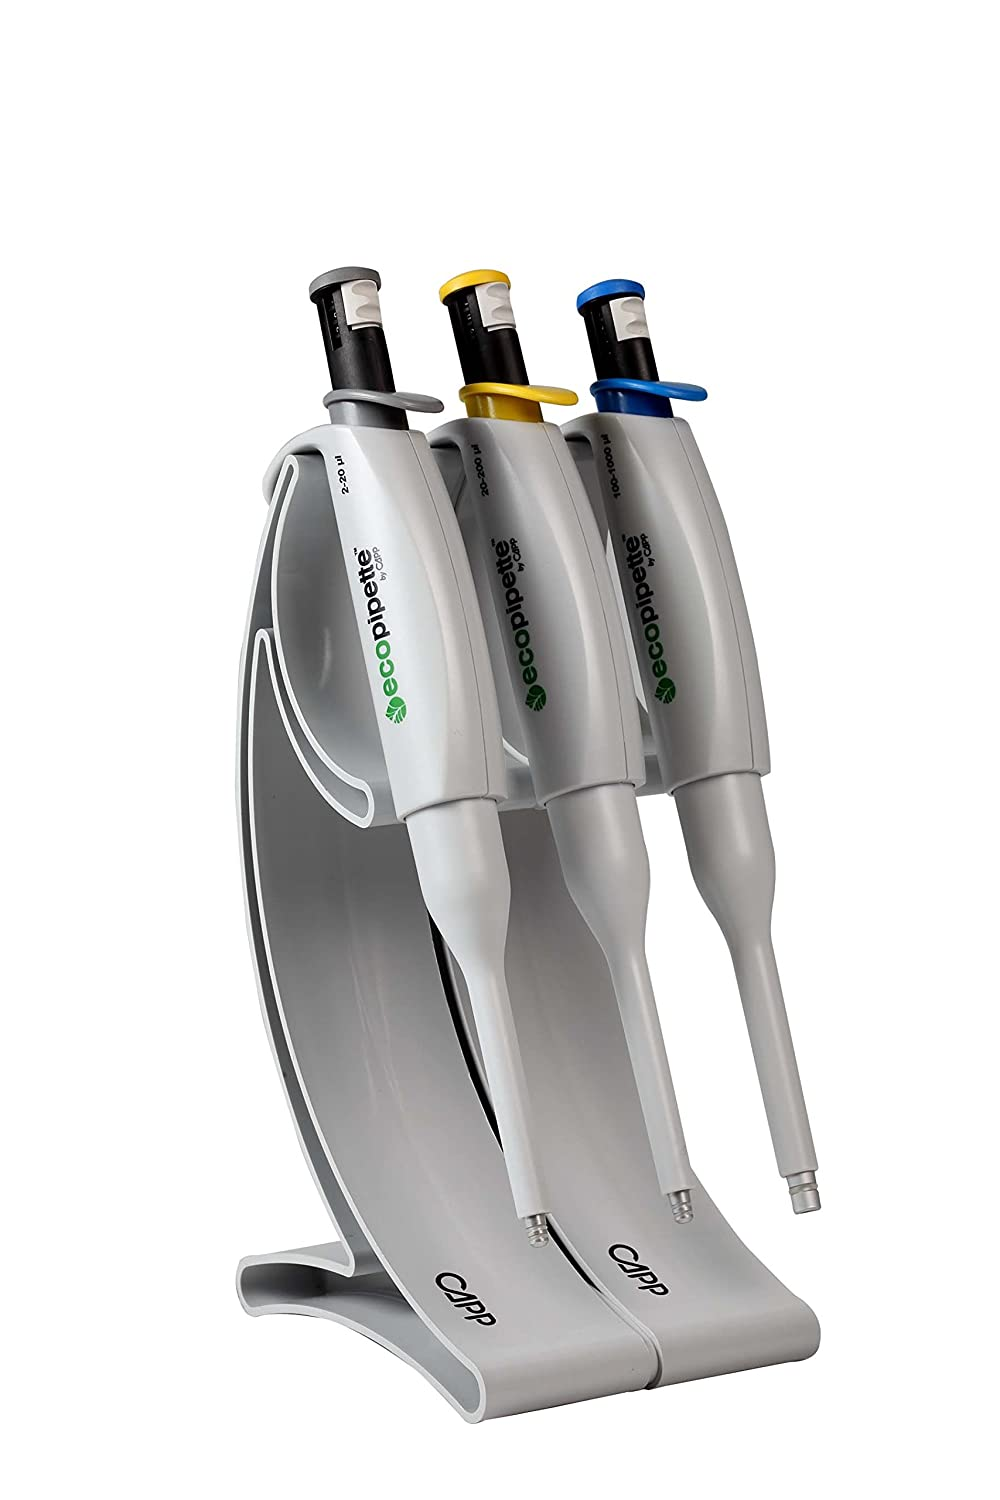 Capp C-01 Combi Stand for up to 3 Mechanical Pipettes, Except Bravo, 2 modules